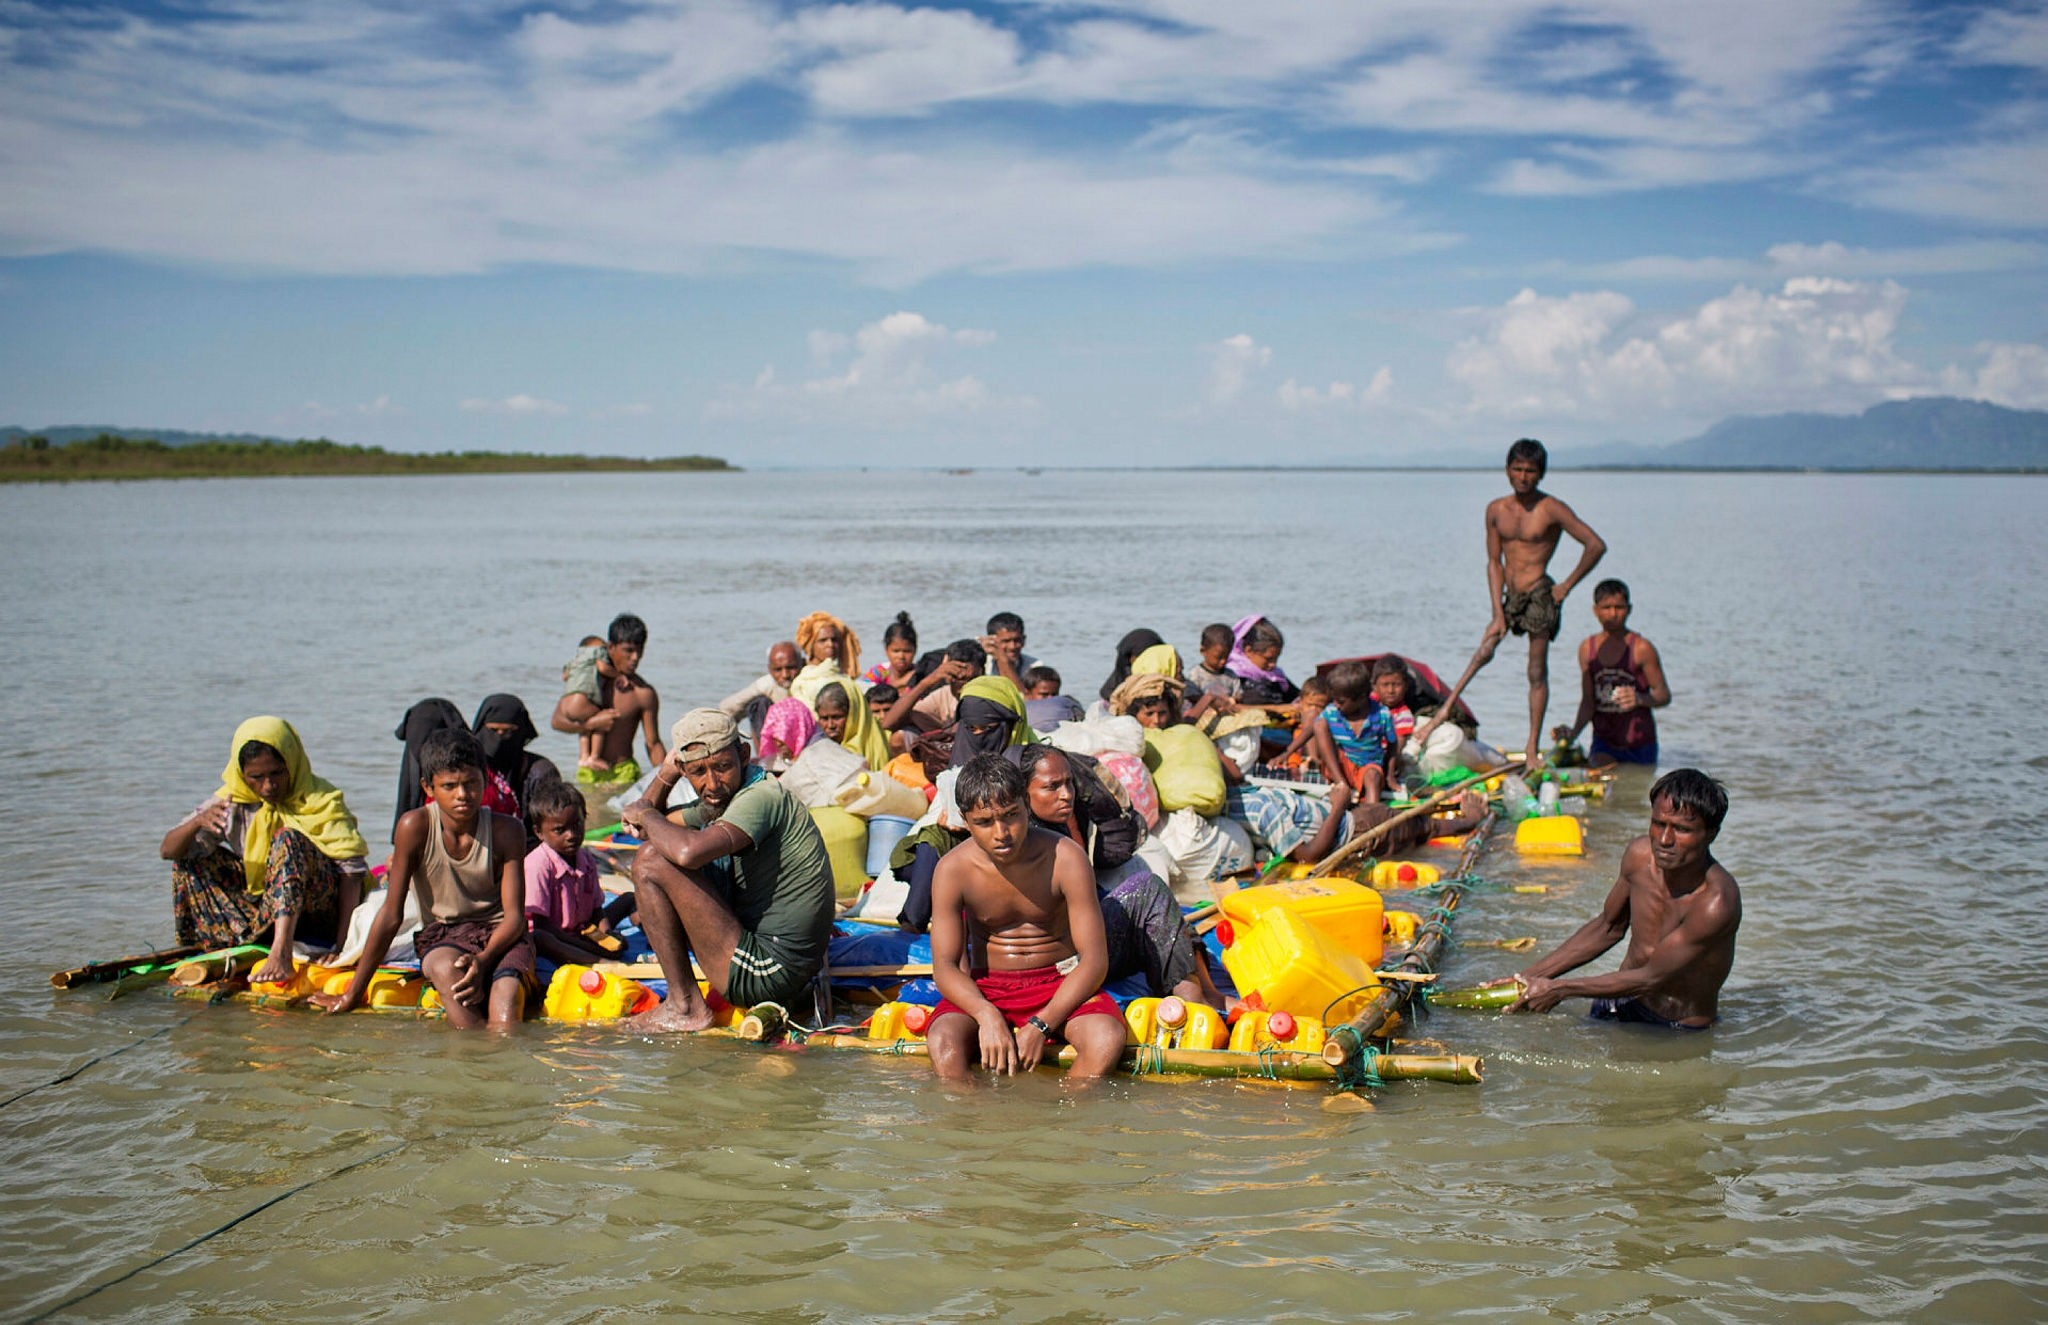 Rohingya refugees travel on a raft made with plastic containers on which they crossed the Naf River from Myanmar to Bangladesh.